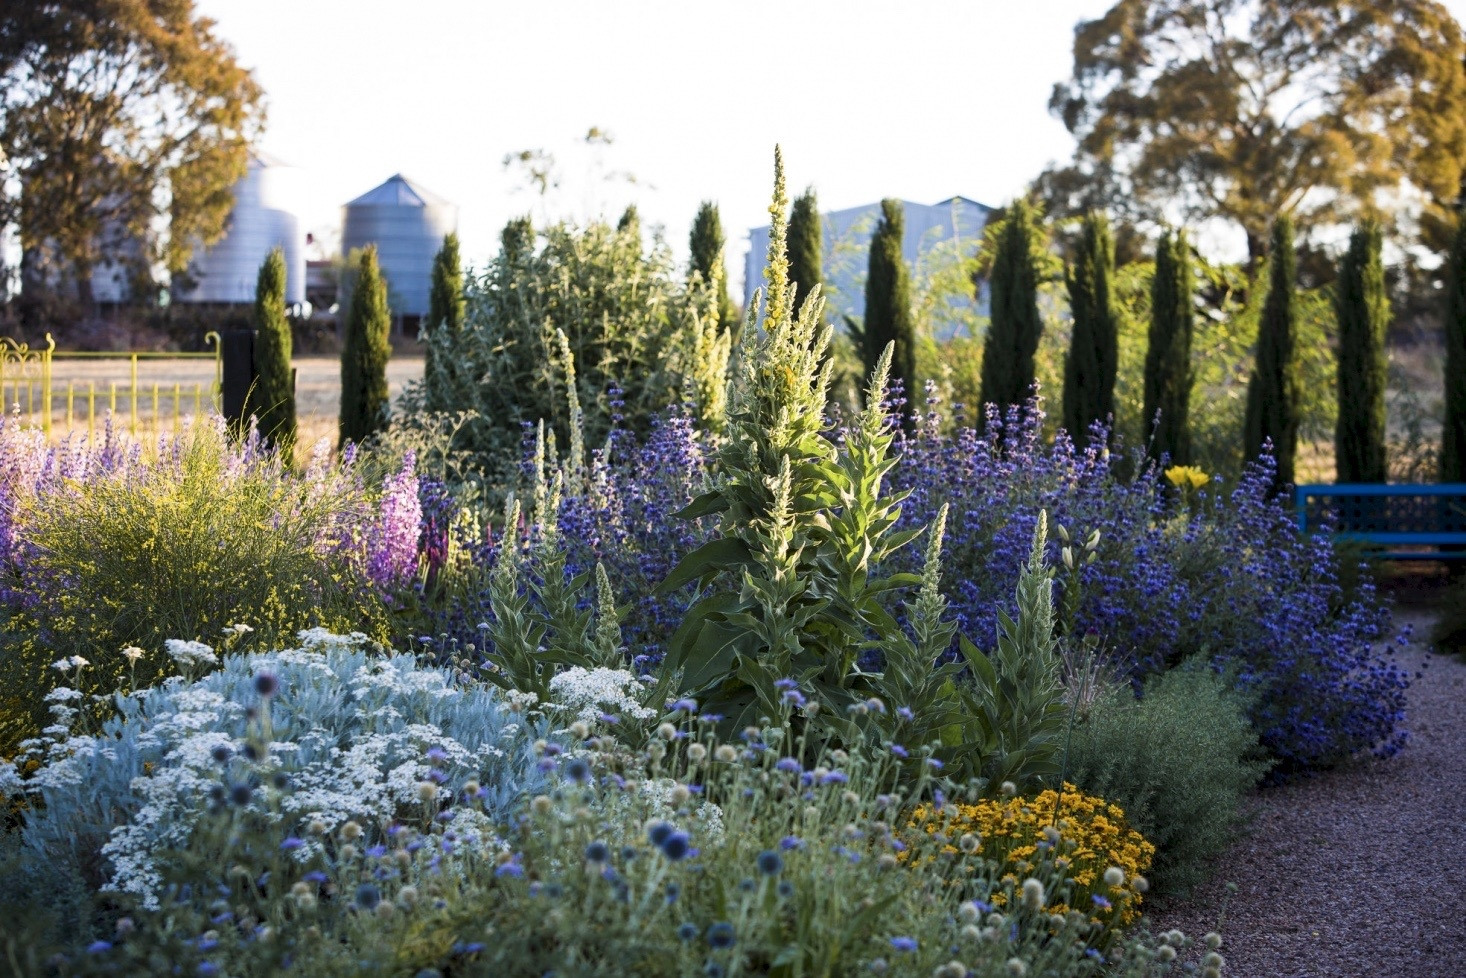 silver foliage is a great idea for a low water garden as it's drought resistant